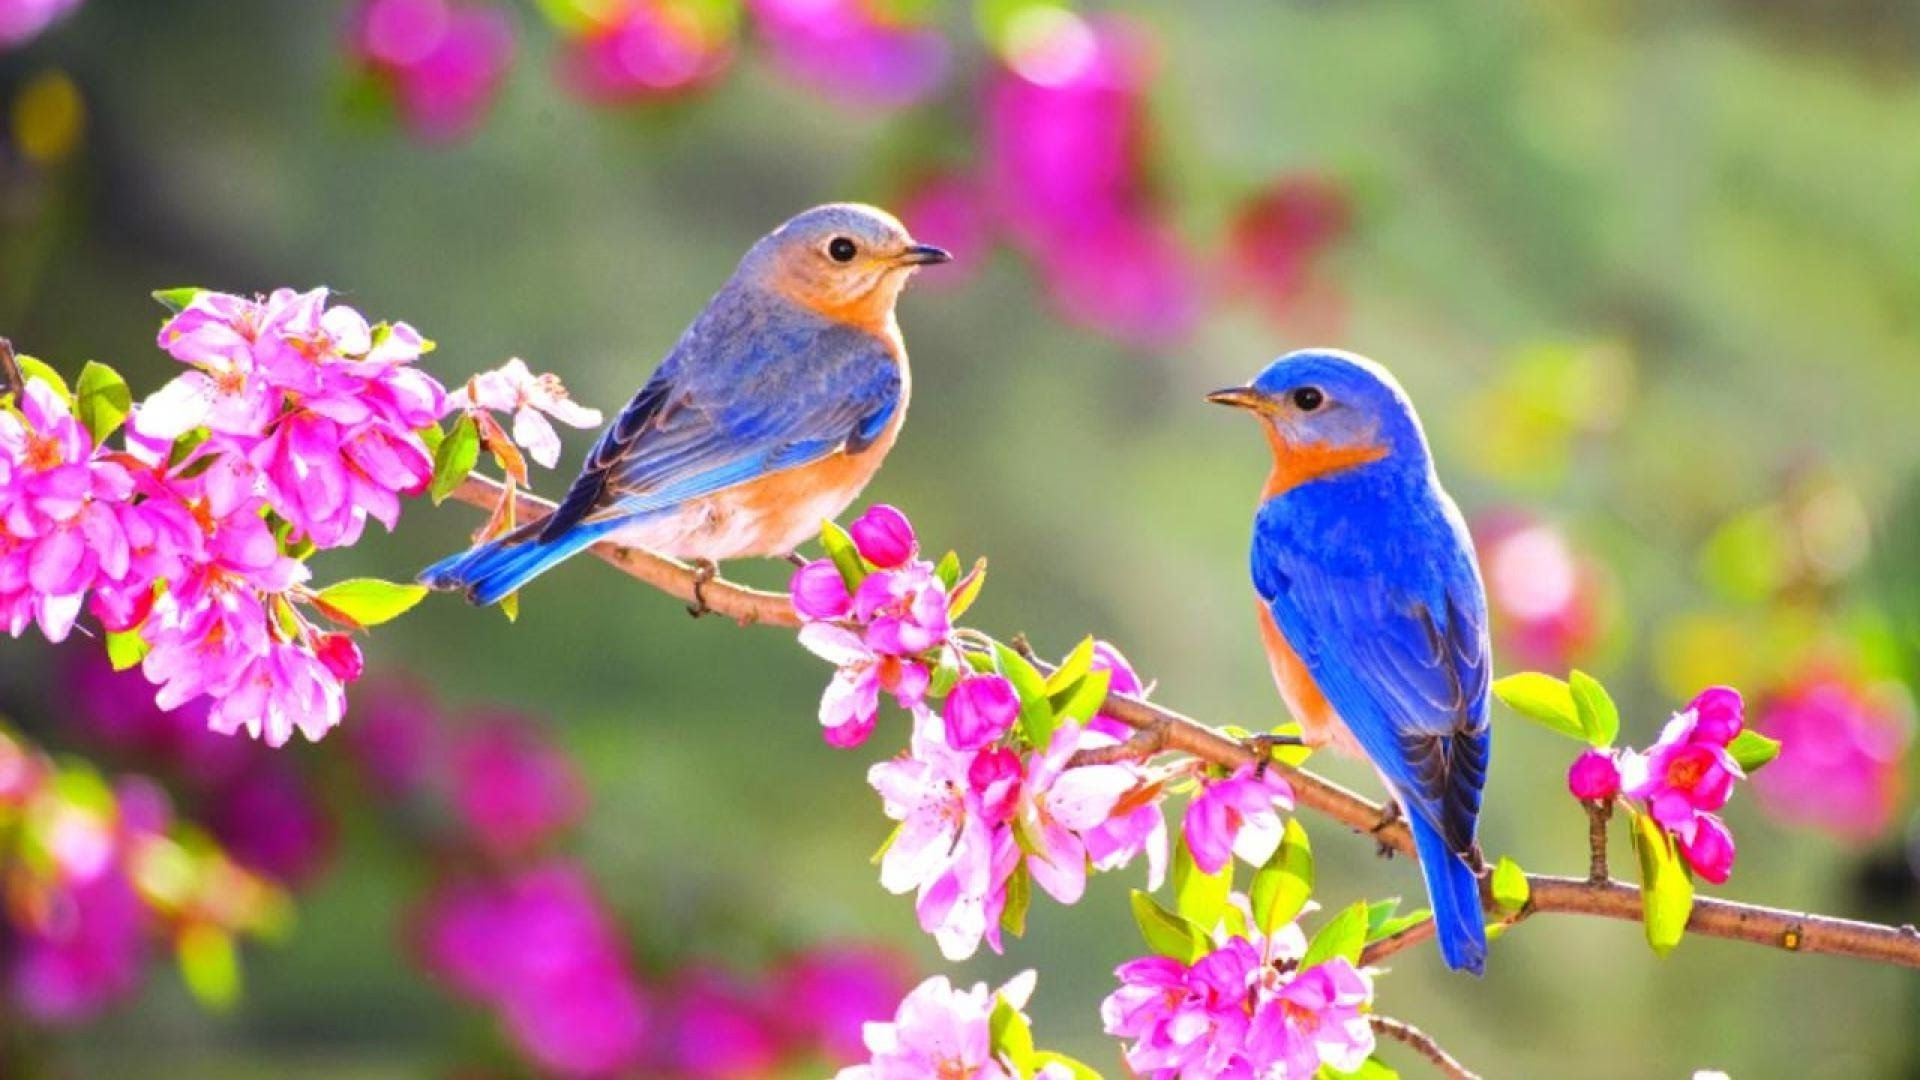 Bird And Butterfly Free Wallpaper